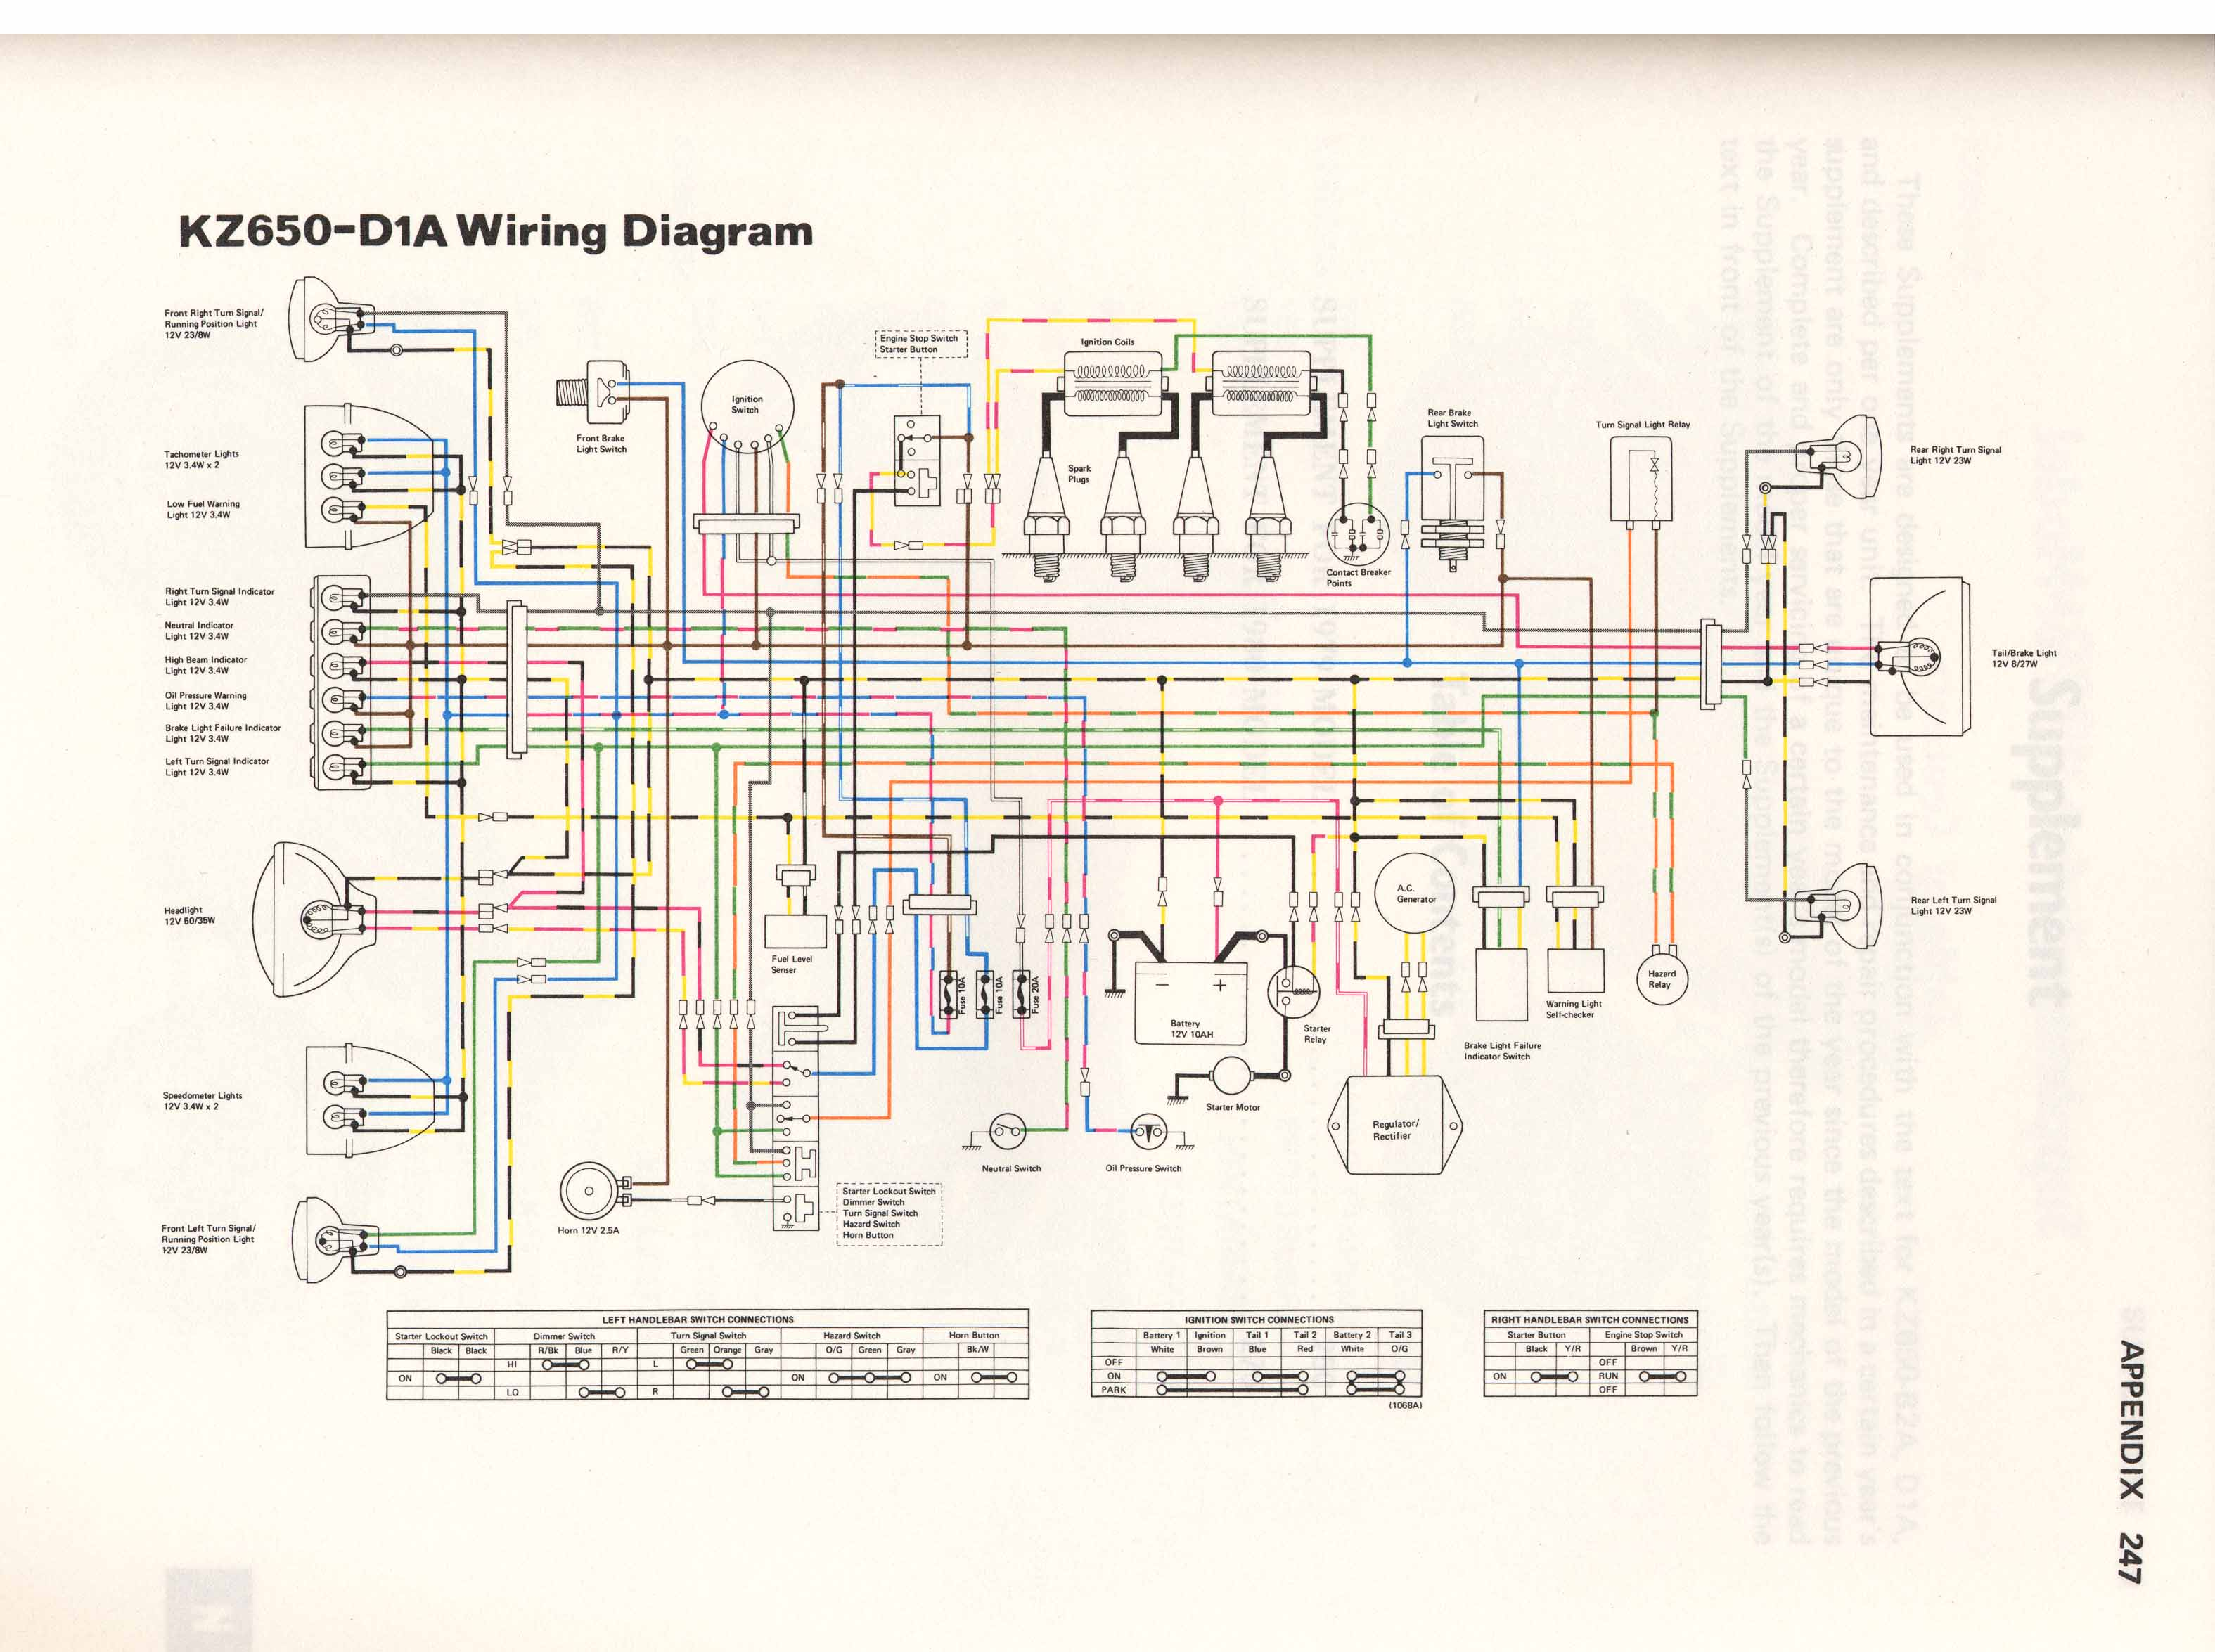 Kawasaki Zx9r Wiring Diagram Pictures 1999 Camry Fuse Box 1983 Diagrams Schematics U2022 Rh Parntesis Co E1